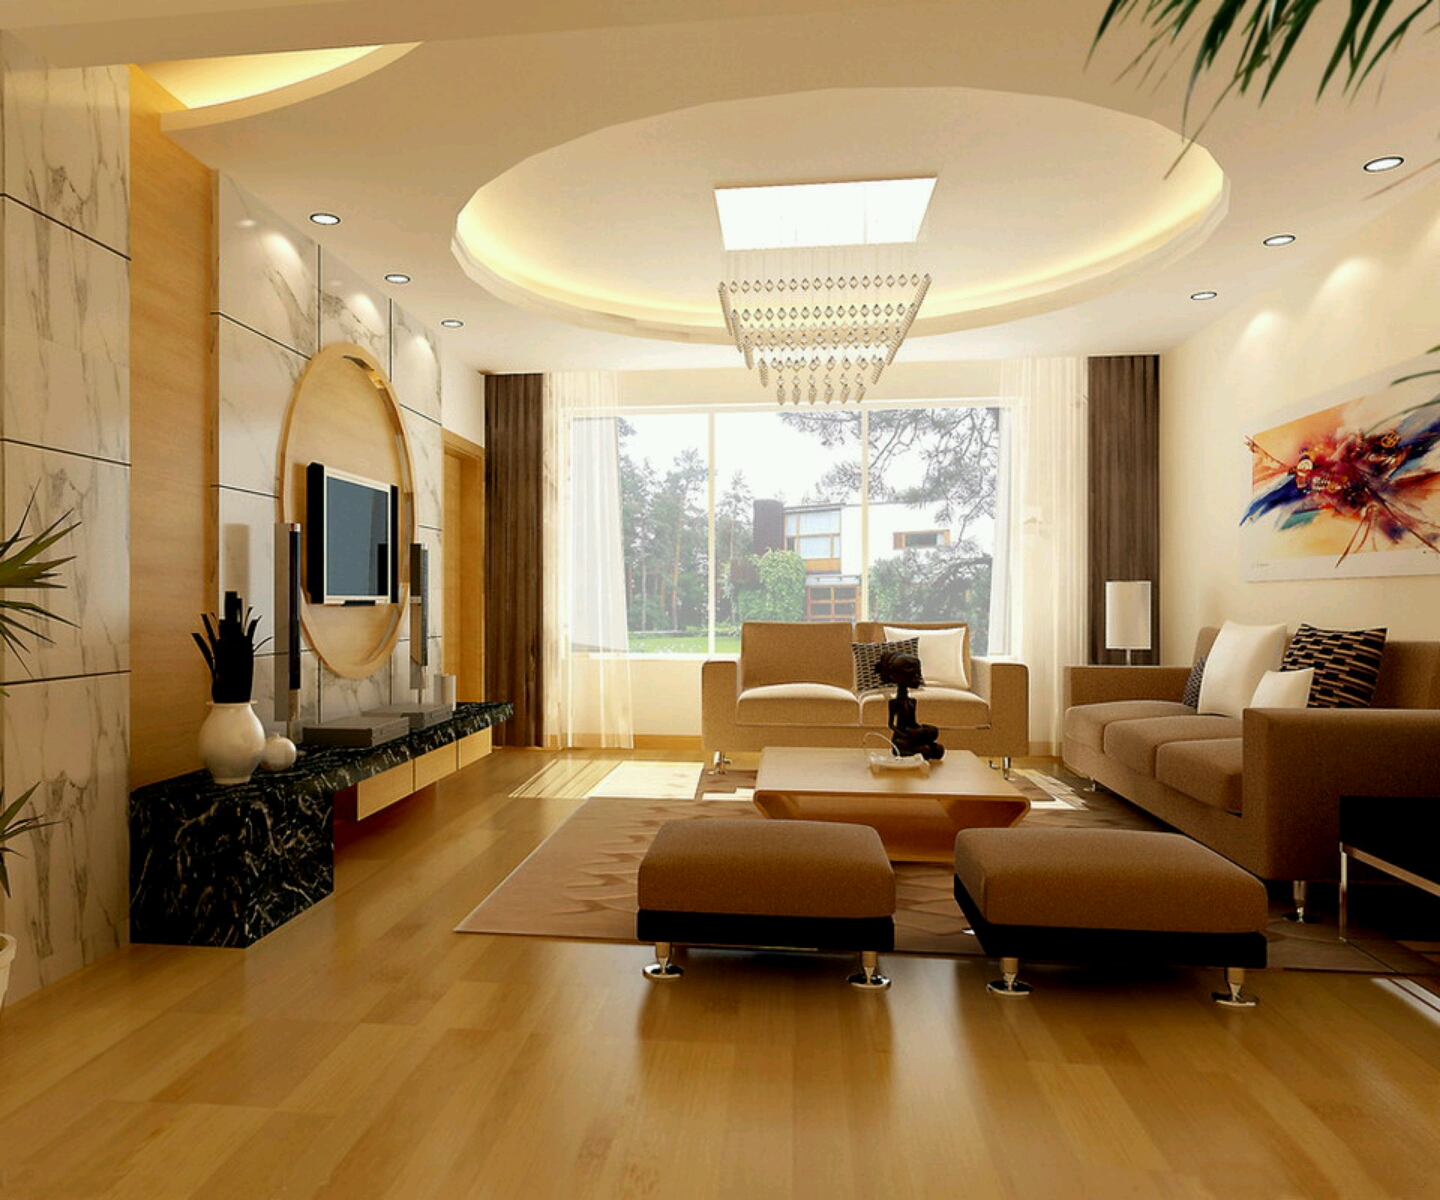 New Home Designs Latest Luxury Homes Interior Designs Ideas: Modern Interior Decoration Living Rooms Ceiling Designs